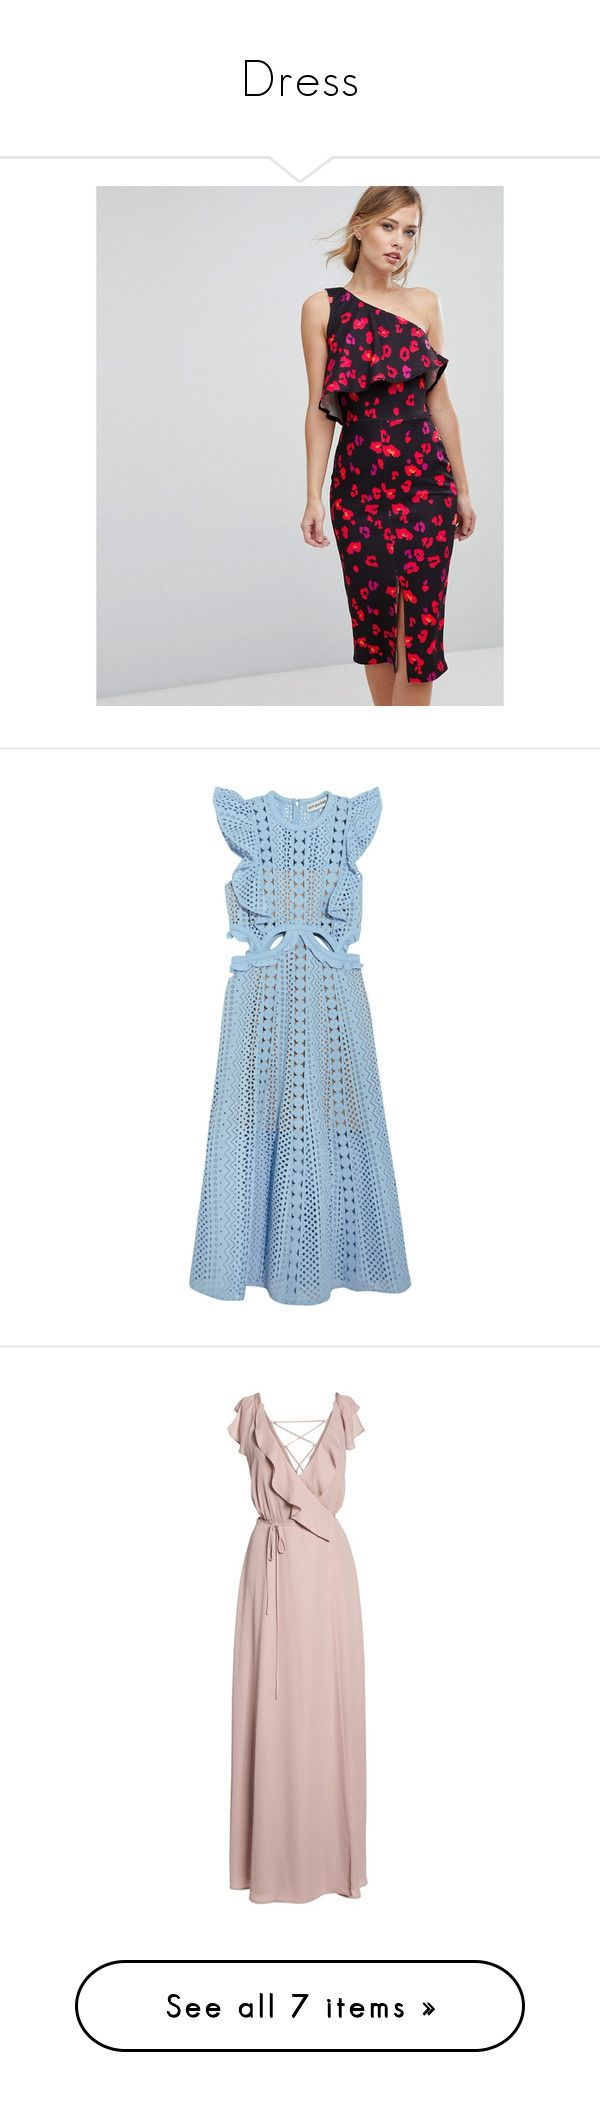 """""""Dress"""" by taniagf ❤ liked on Polyvore featuring dresses, multi, midi cocktail dress, strapless cocktail dresses, strapless midi dress, ruffle midi dress, shift dress, vestidos, sky blue and sheer dress"""